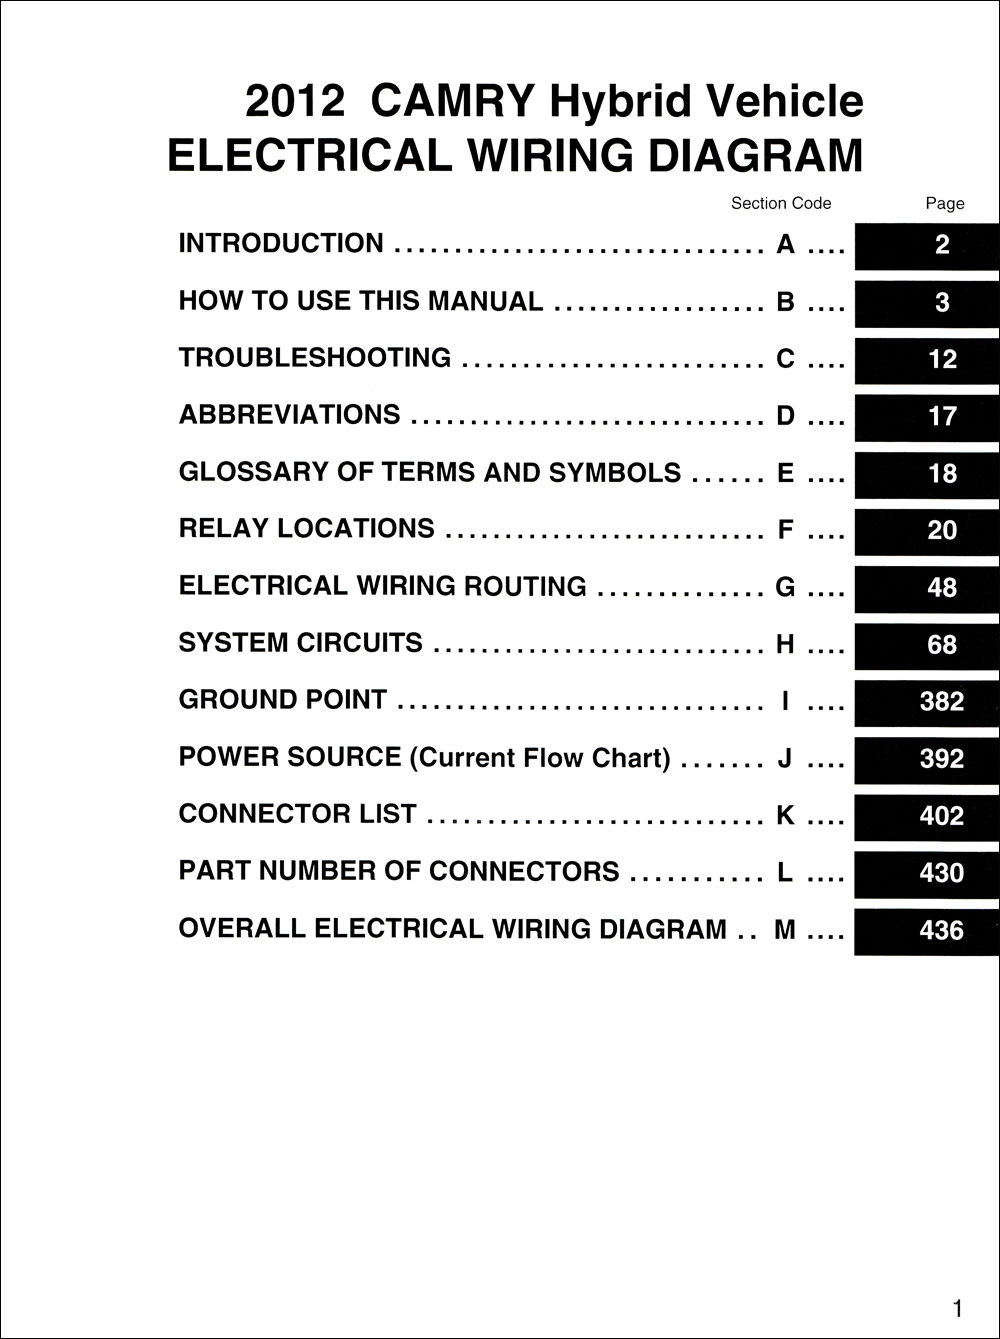 2012 Toyota Camry Hybrid Wiring Diagram Manual Reprint